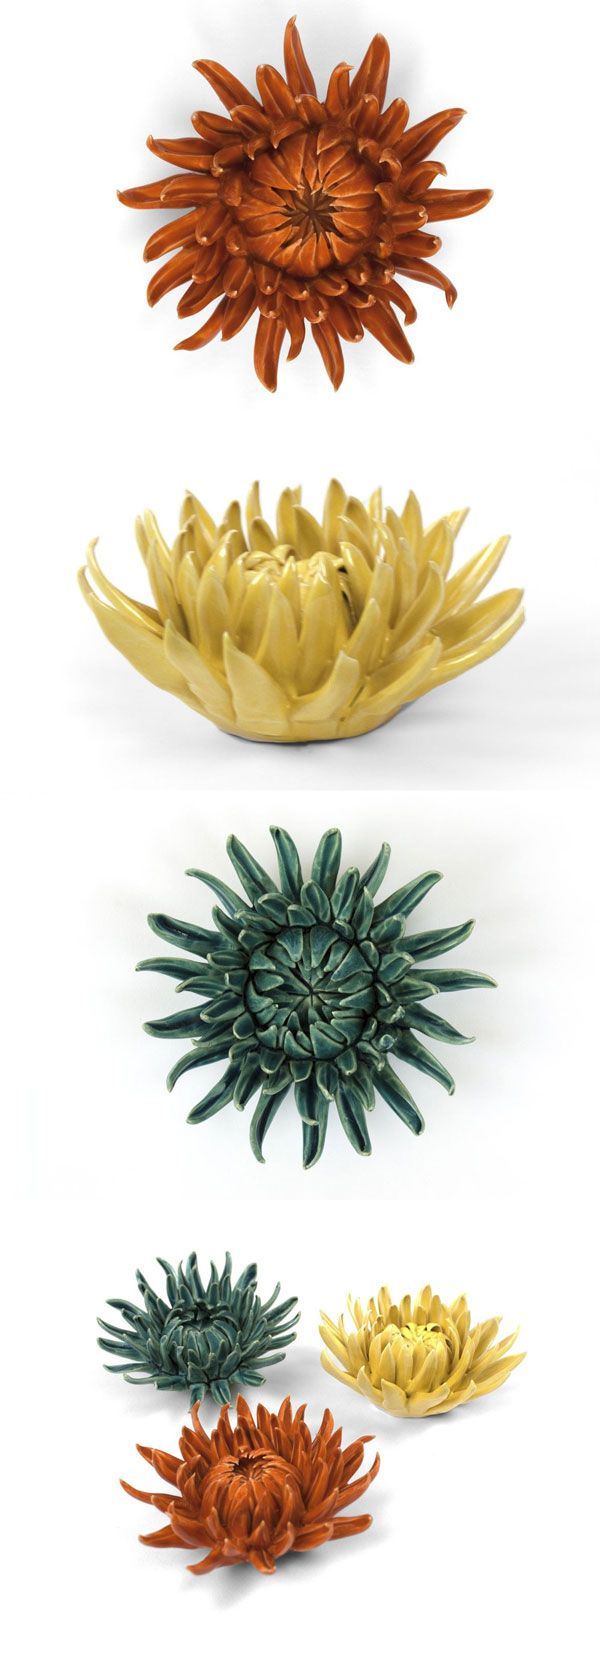 These ceramic mums bring a fresh feeling of liveliness and growth to the indoors—no watering required! Each floral piece in this collection of flowers, succulents, and coral is painstakingly handmade. As a result, each and everyone one is unique, just like a real flower blooming in nature.